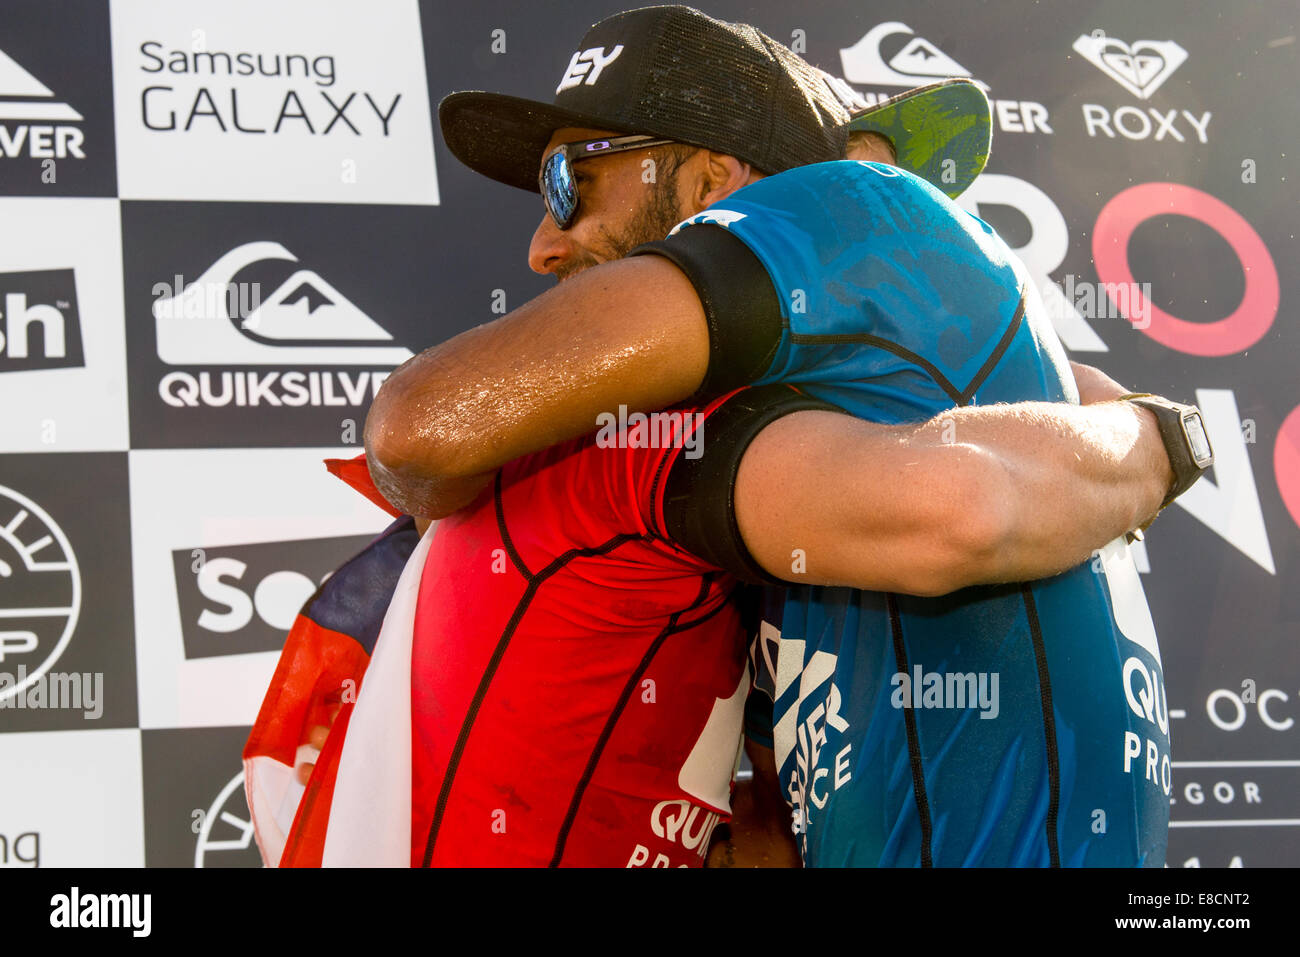 Seignosse, France. 5th Oct, 2014. Runner-up Jason Andre congratulates John John Florence, of Hawaii, who emerged - Stock Image